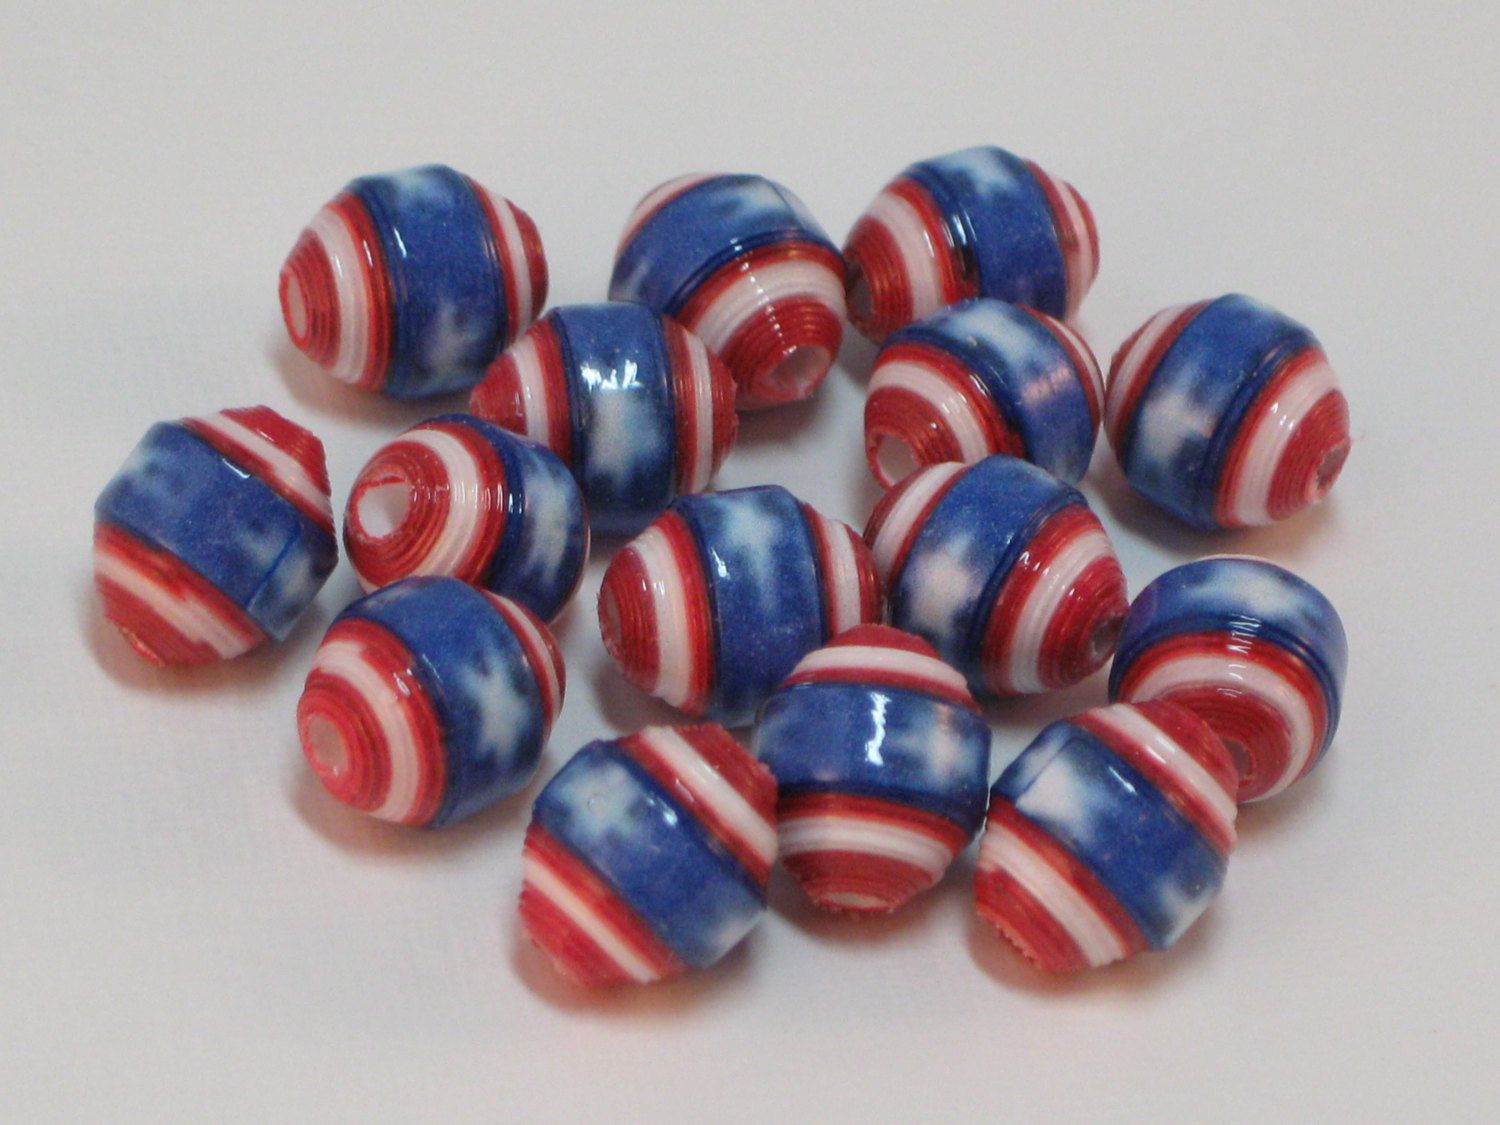 random deals sale chunky jewelry charmed best and beads glass great seller bead beading for gemstone mixed resellers charmedenchantmentscebeadsjewe enchantments strands supplies images